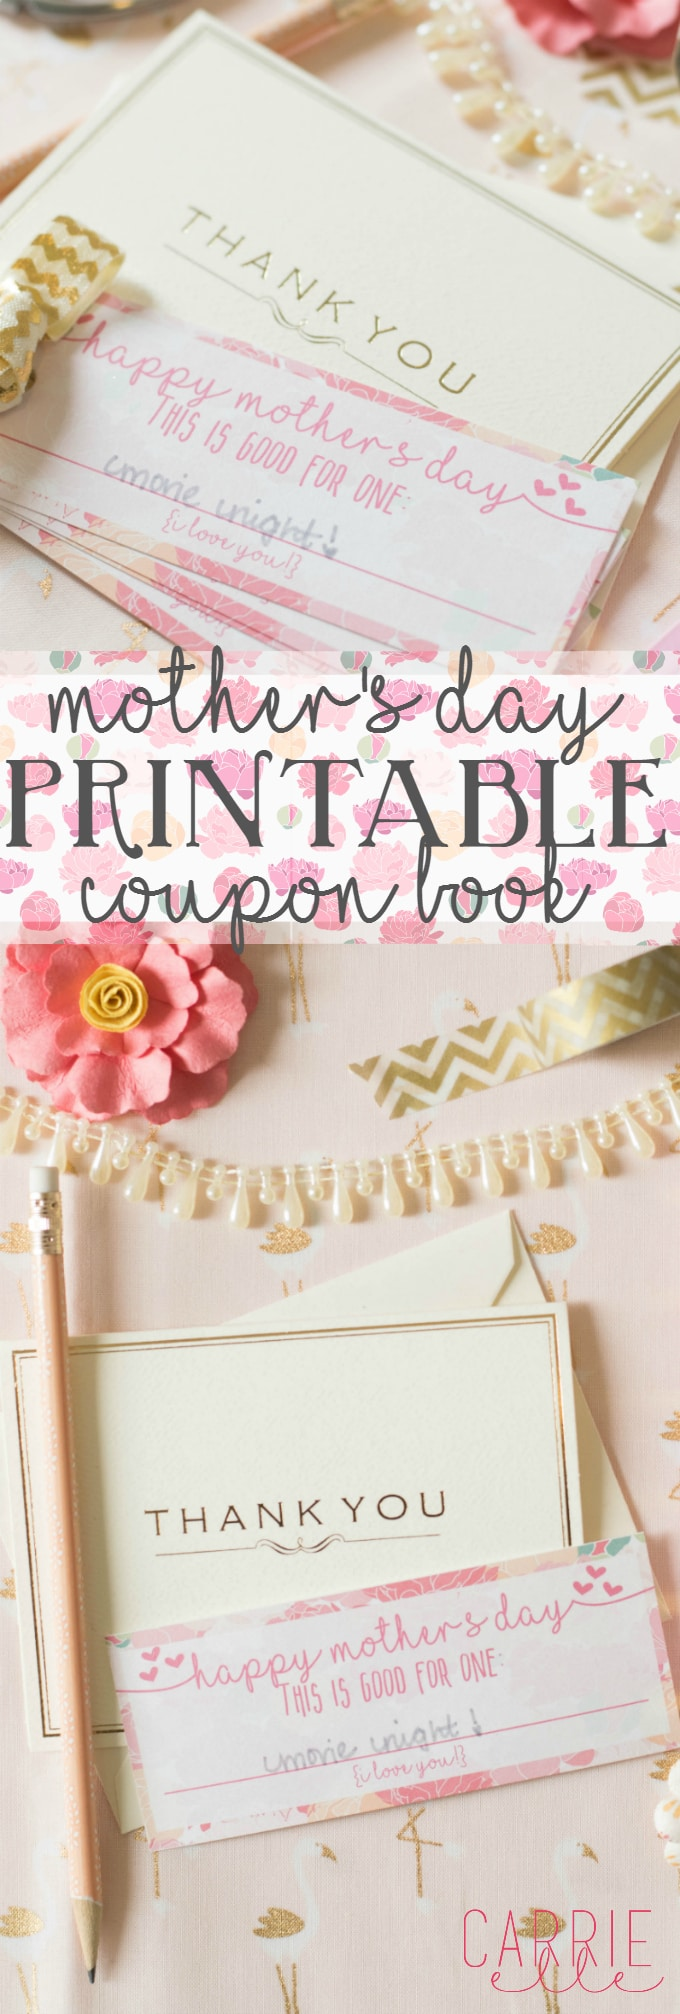 Mother's Day Printable Coupon Book